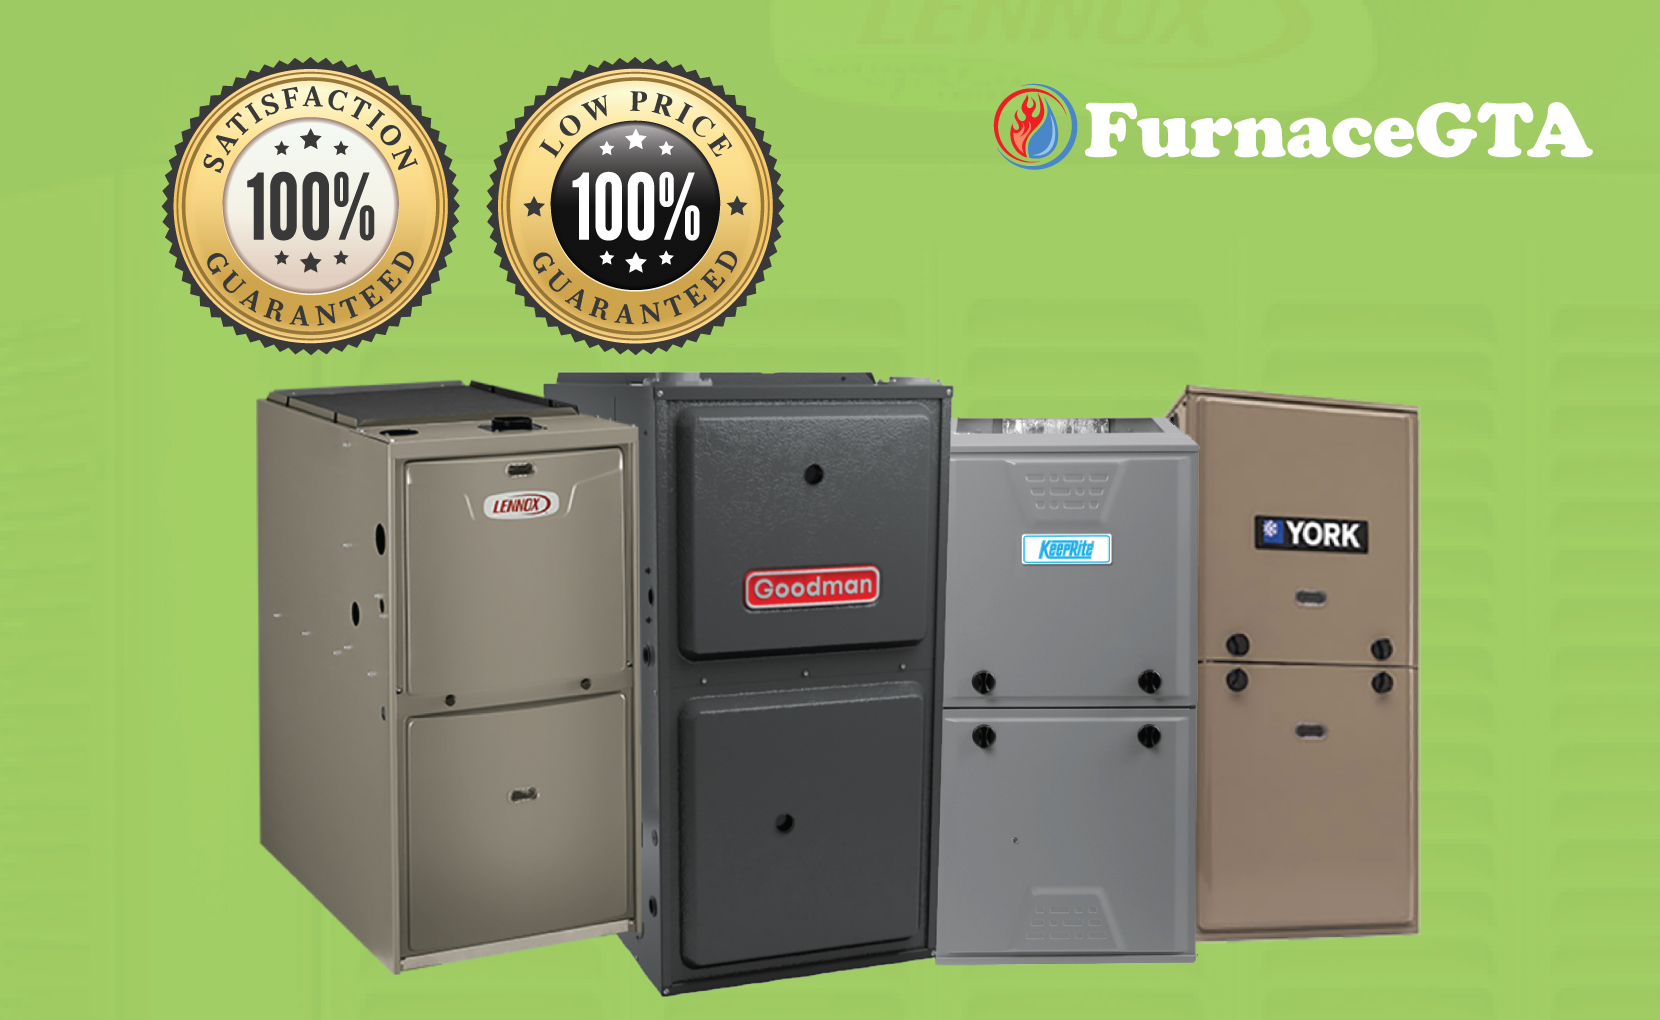 Furnace Gta High Efficiency Furnaces